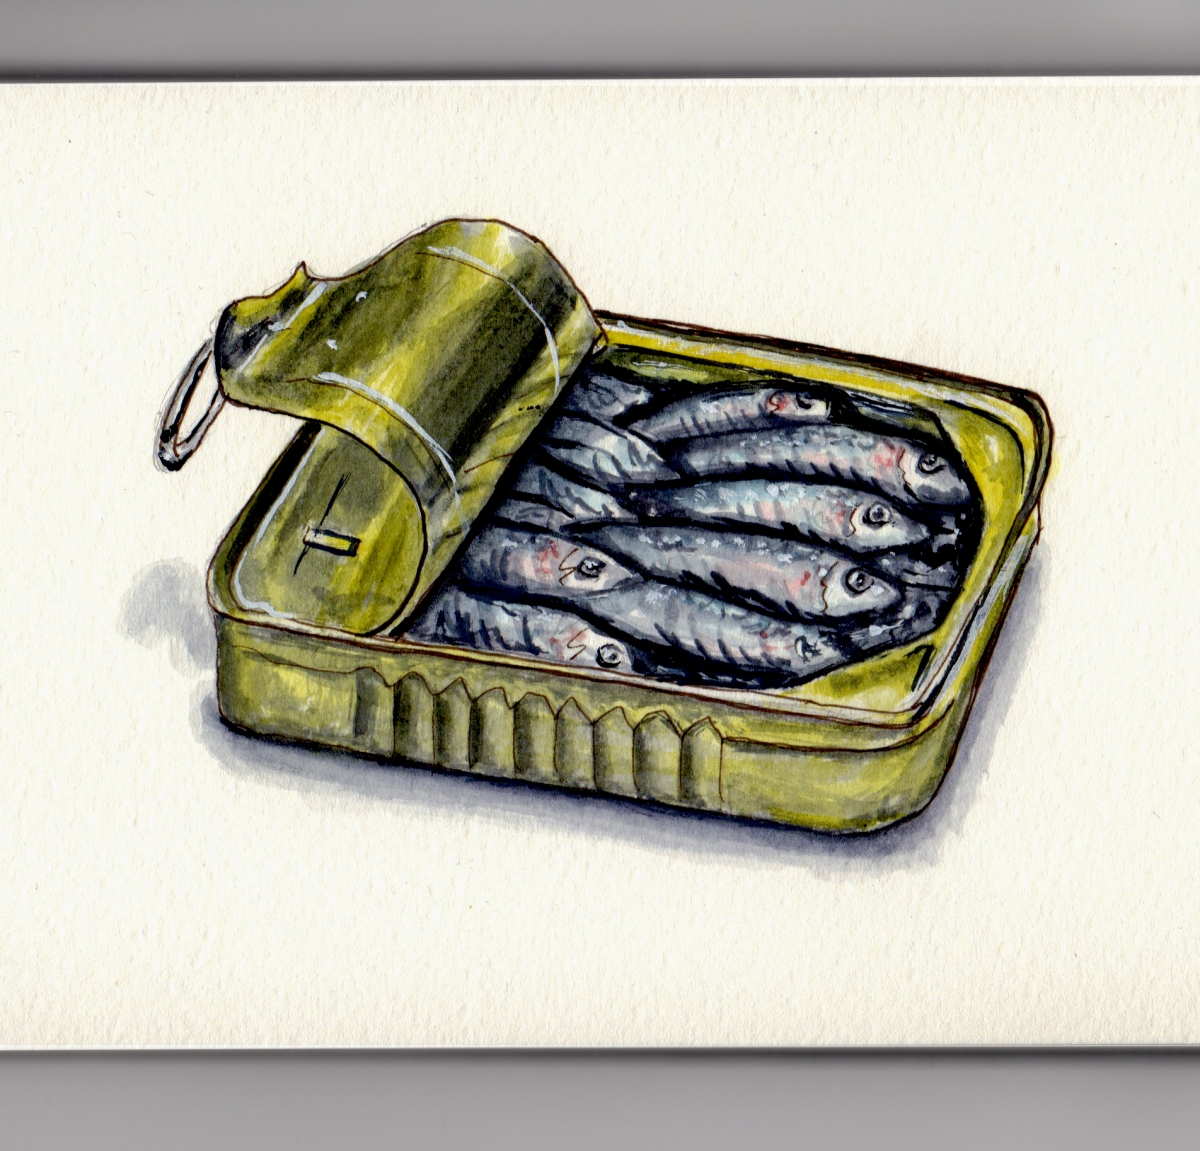 National Sardines Day by Charlie O'Shields